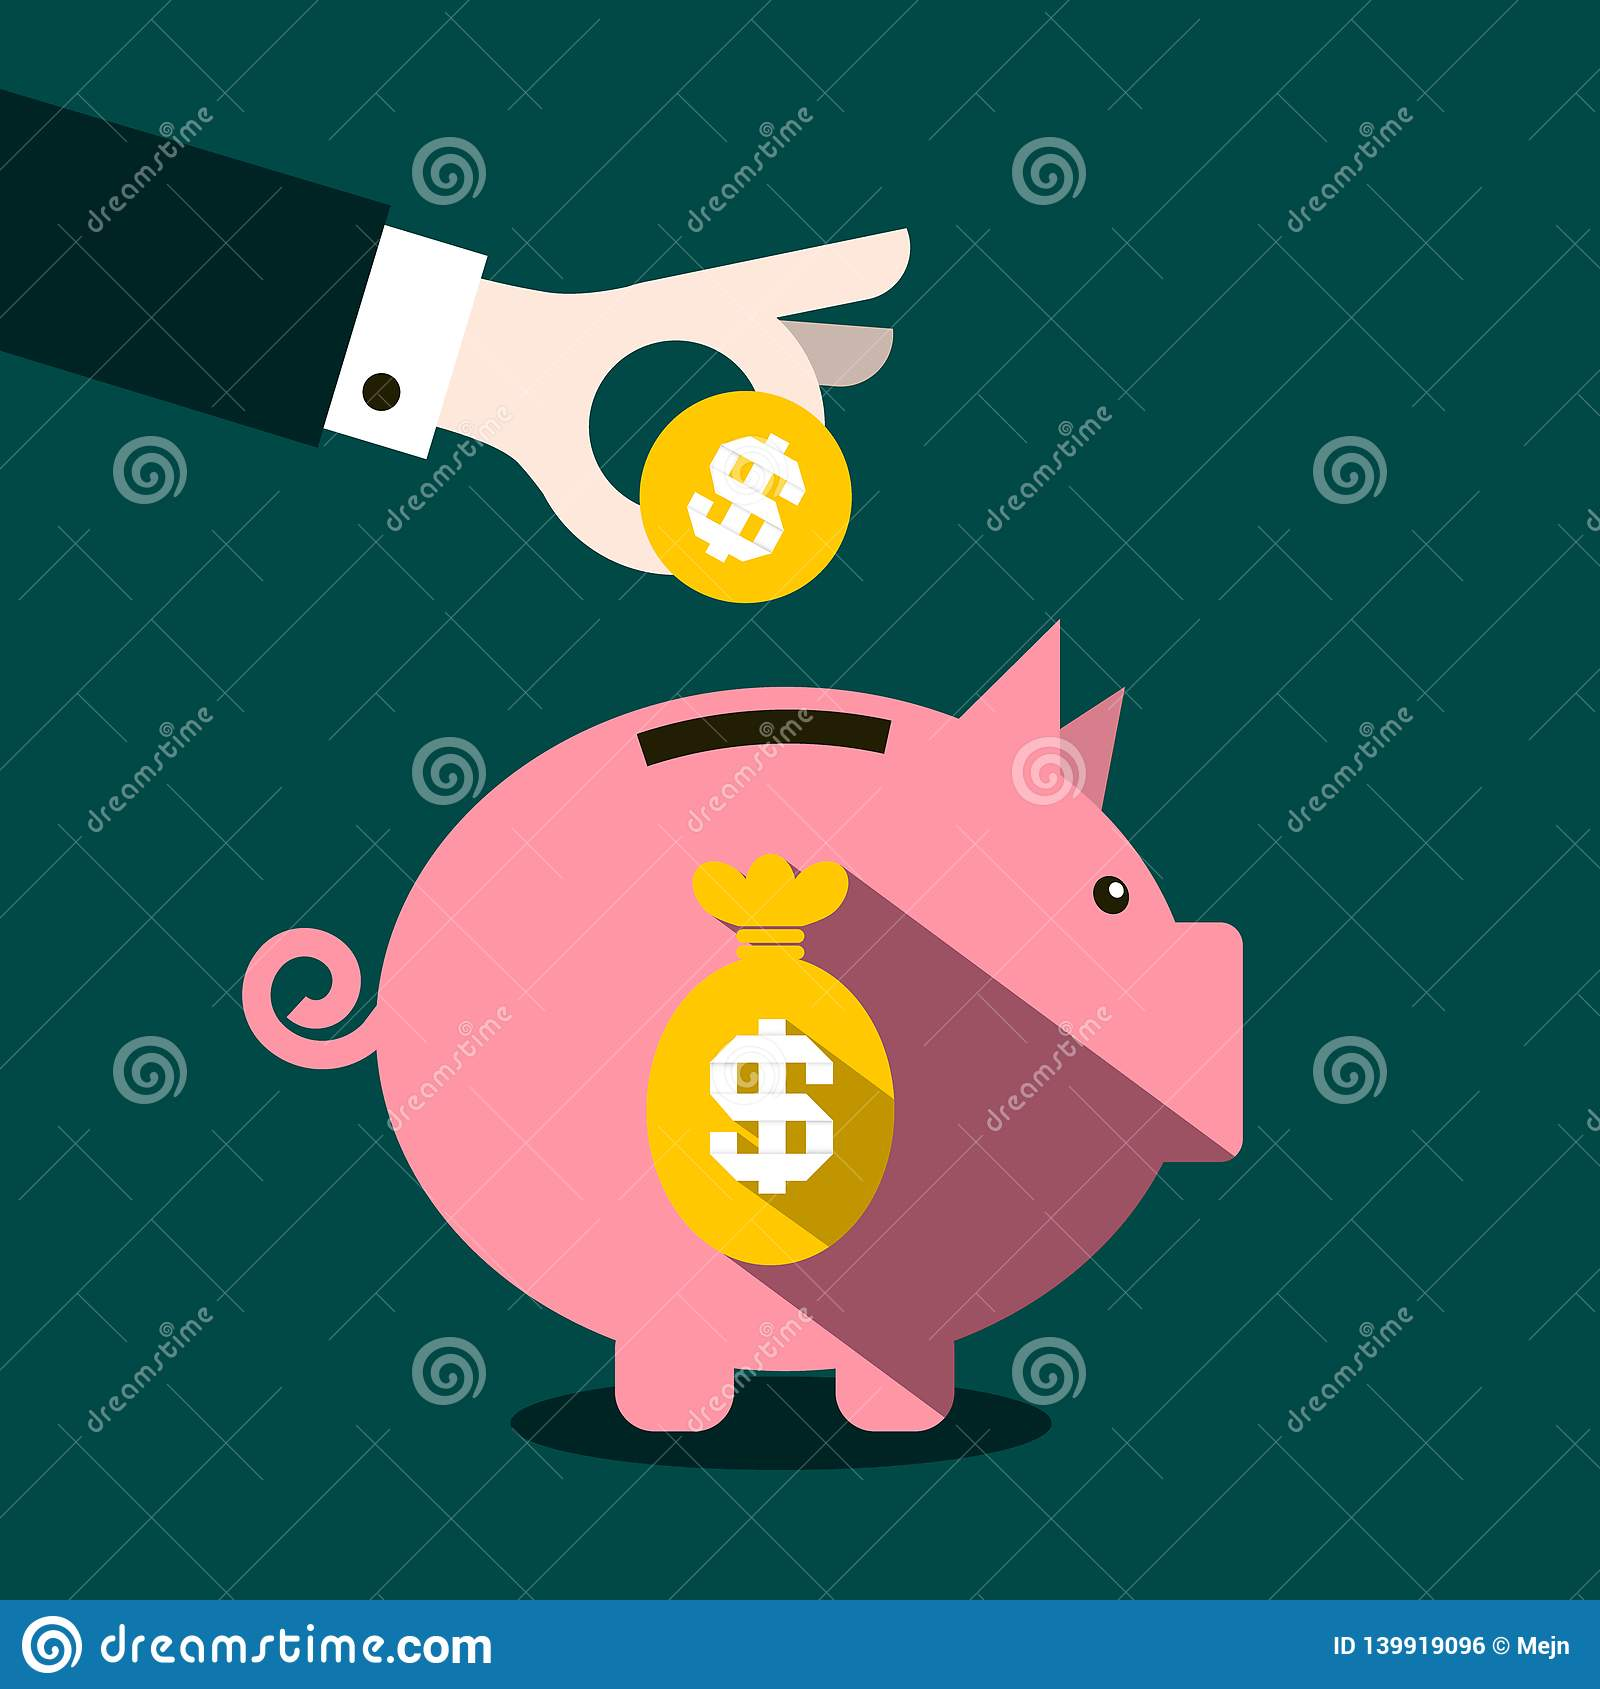 Money Pig Design with Coin in Hand